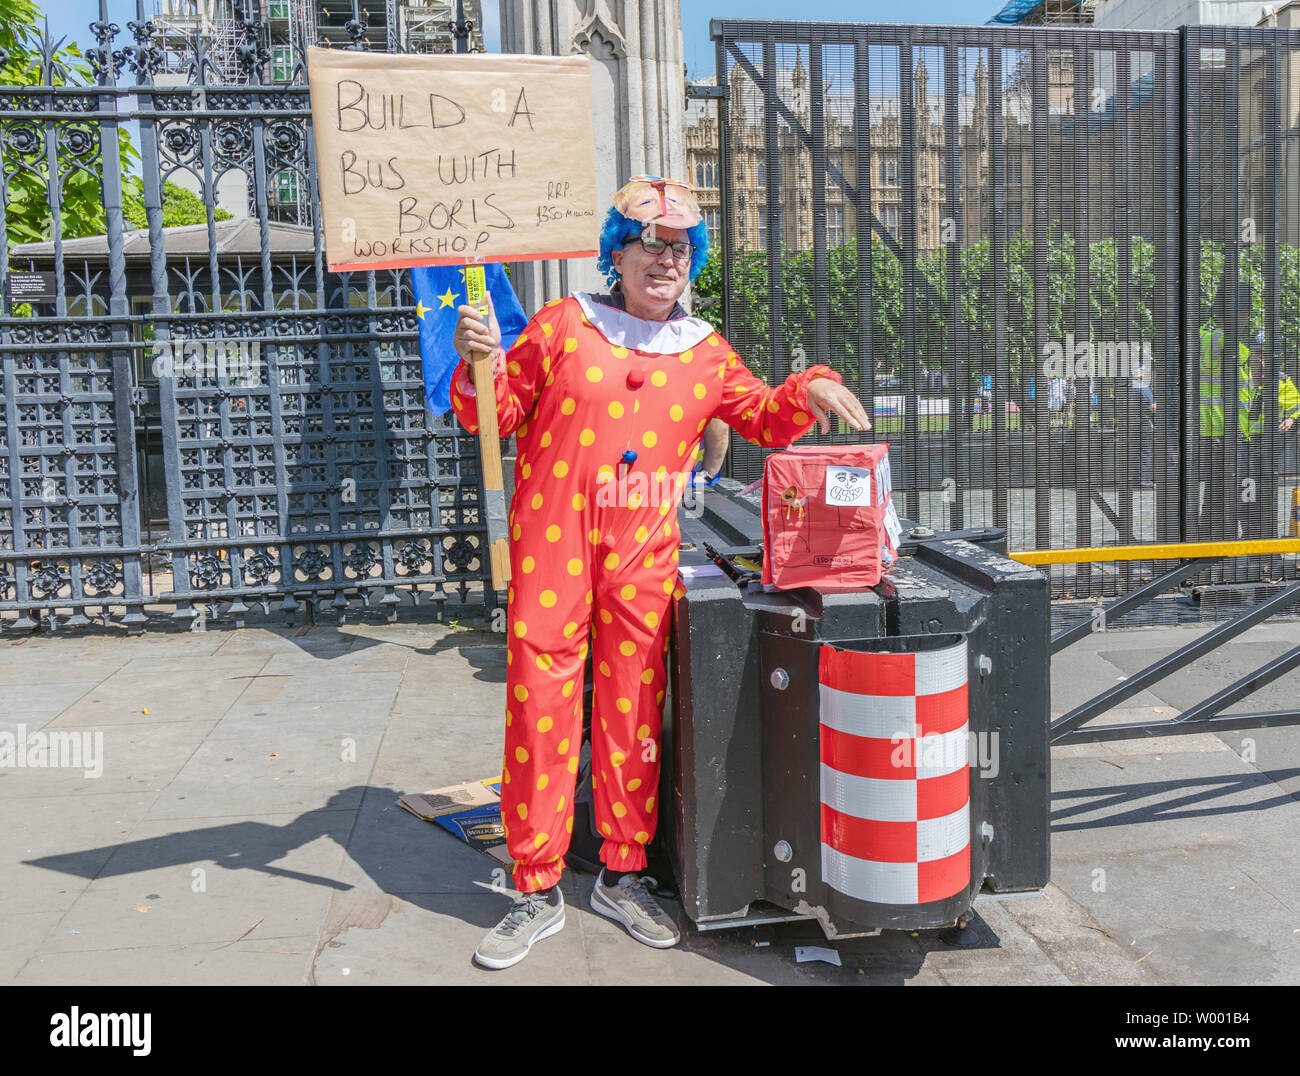 London / UK - June 26th 2019 - Pro-EU anti-Brexit protester dressed as a clown and holding a sign saying 'Build a bus with Boris workshop RRP £350mil' - Stock Image